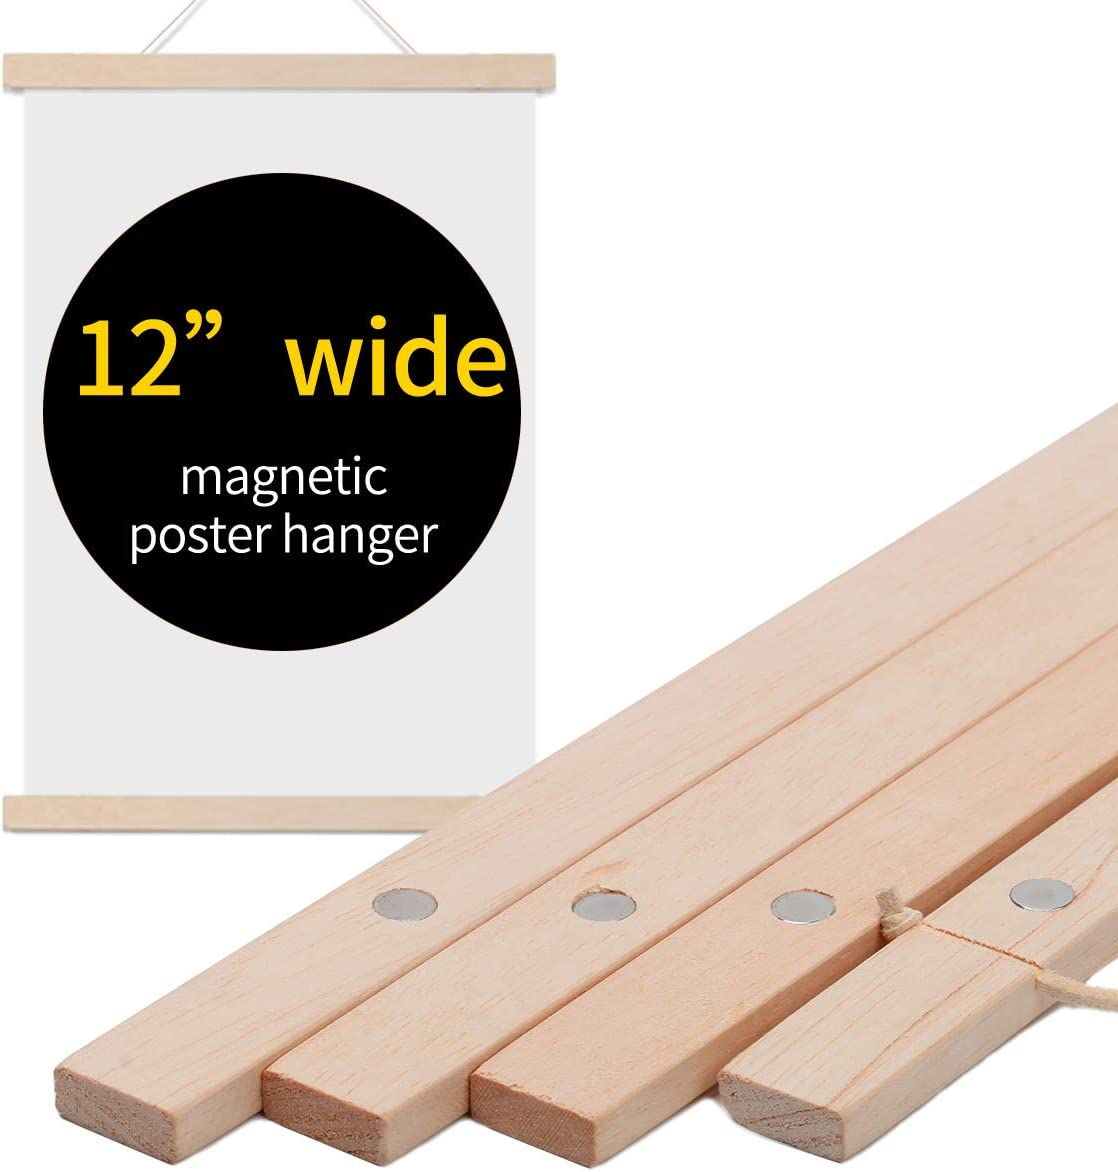 """WIWAPLEX Magnetic Poster Frame Hanger, 12"""" Wide Wooden Magnet Frames Hanger for Canvas Artwork Art Print Paper Map Family Kid Photo Picture Wall Hanging (12 Inch)"""